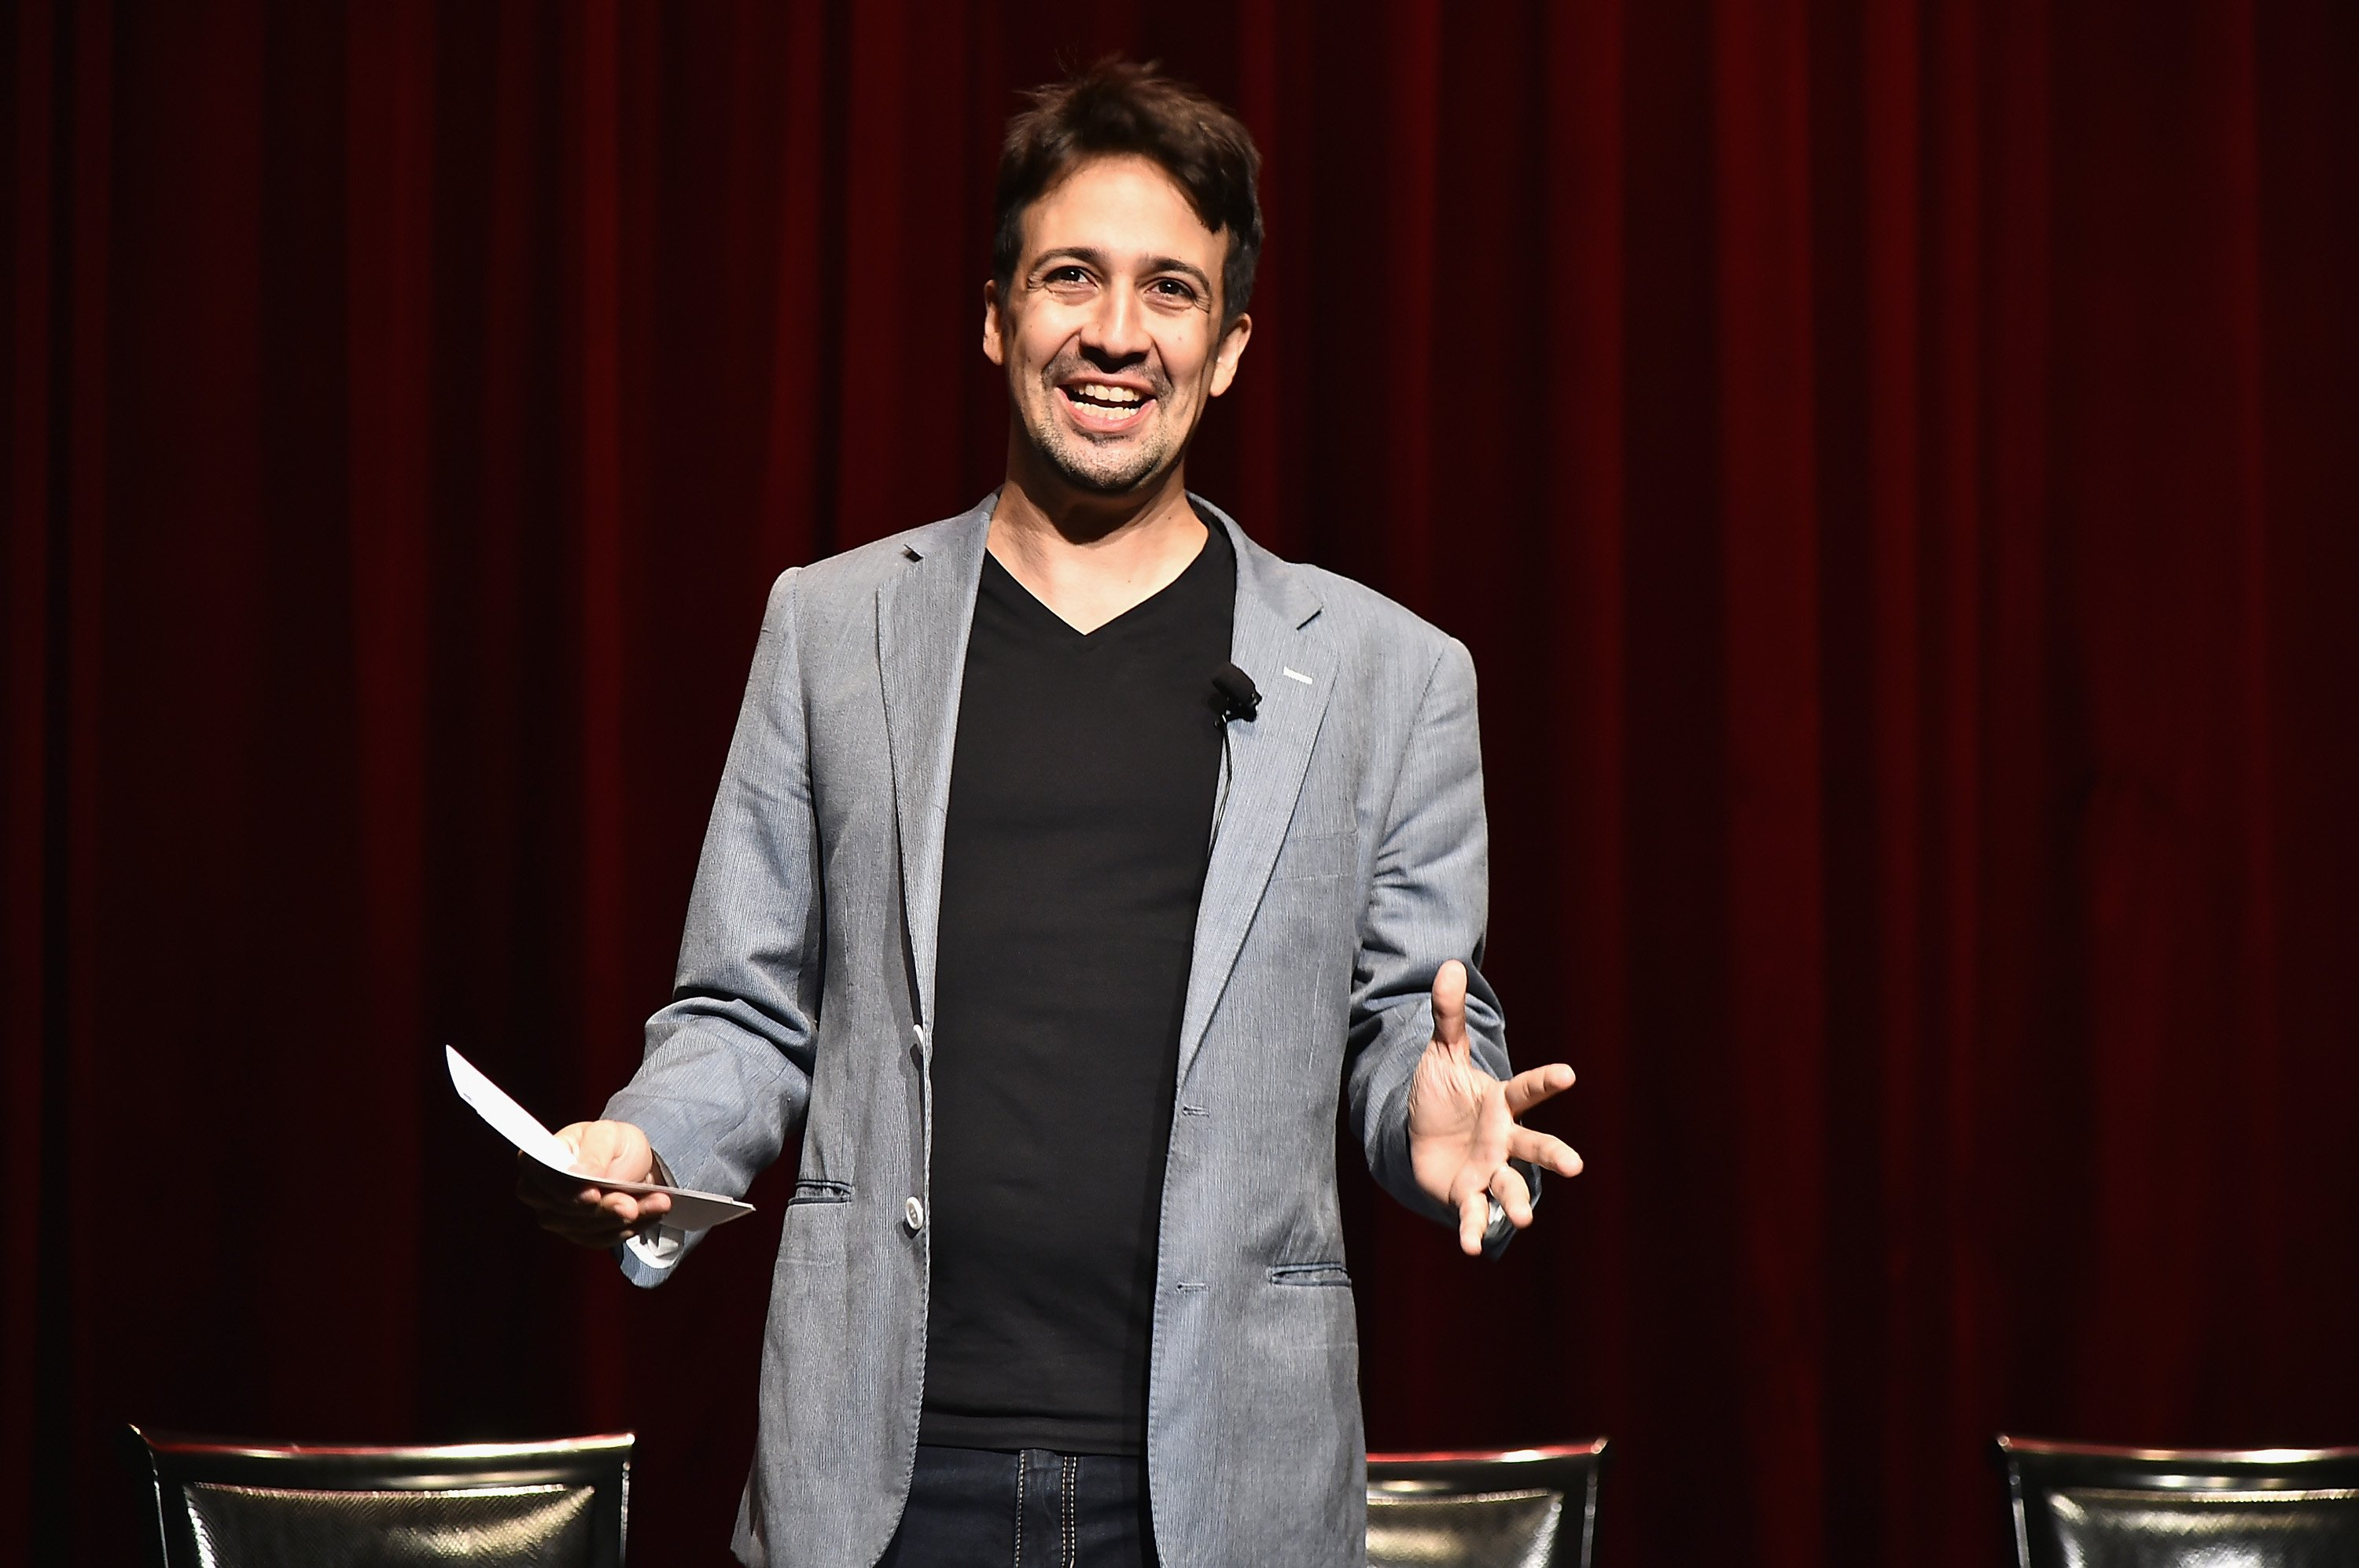 Lin-Manuel Miranda attends the 'Grease: Live' Panel & Reception at The Edison Ballroom on August 15, 2016 in New York City